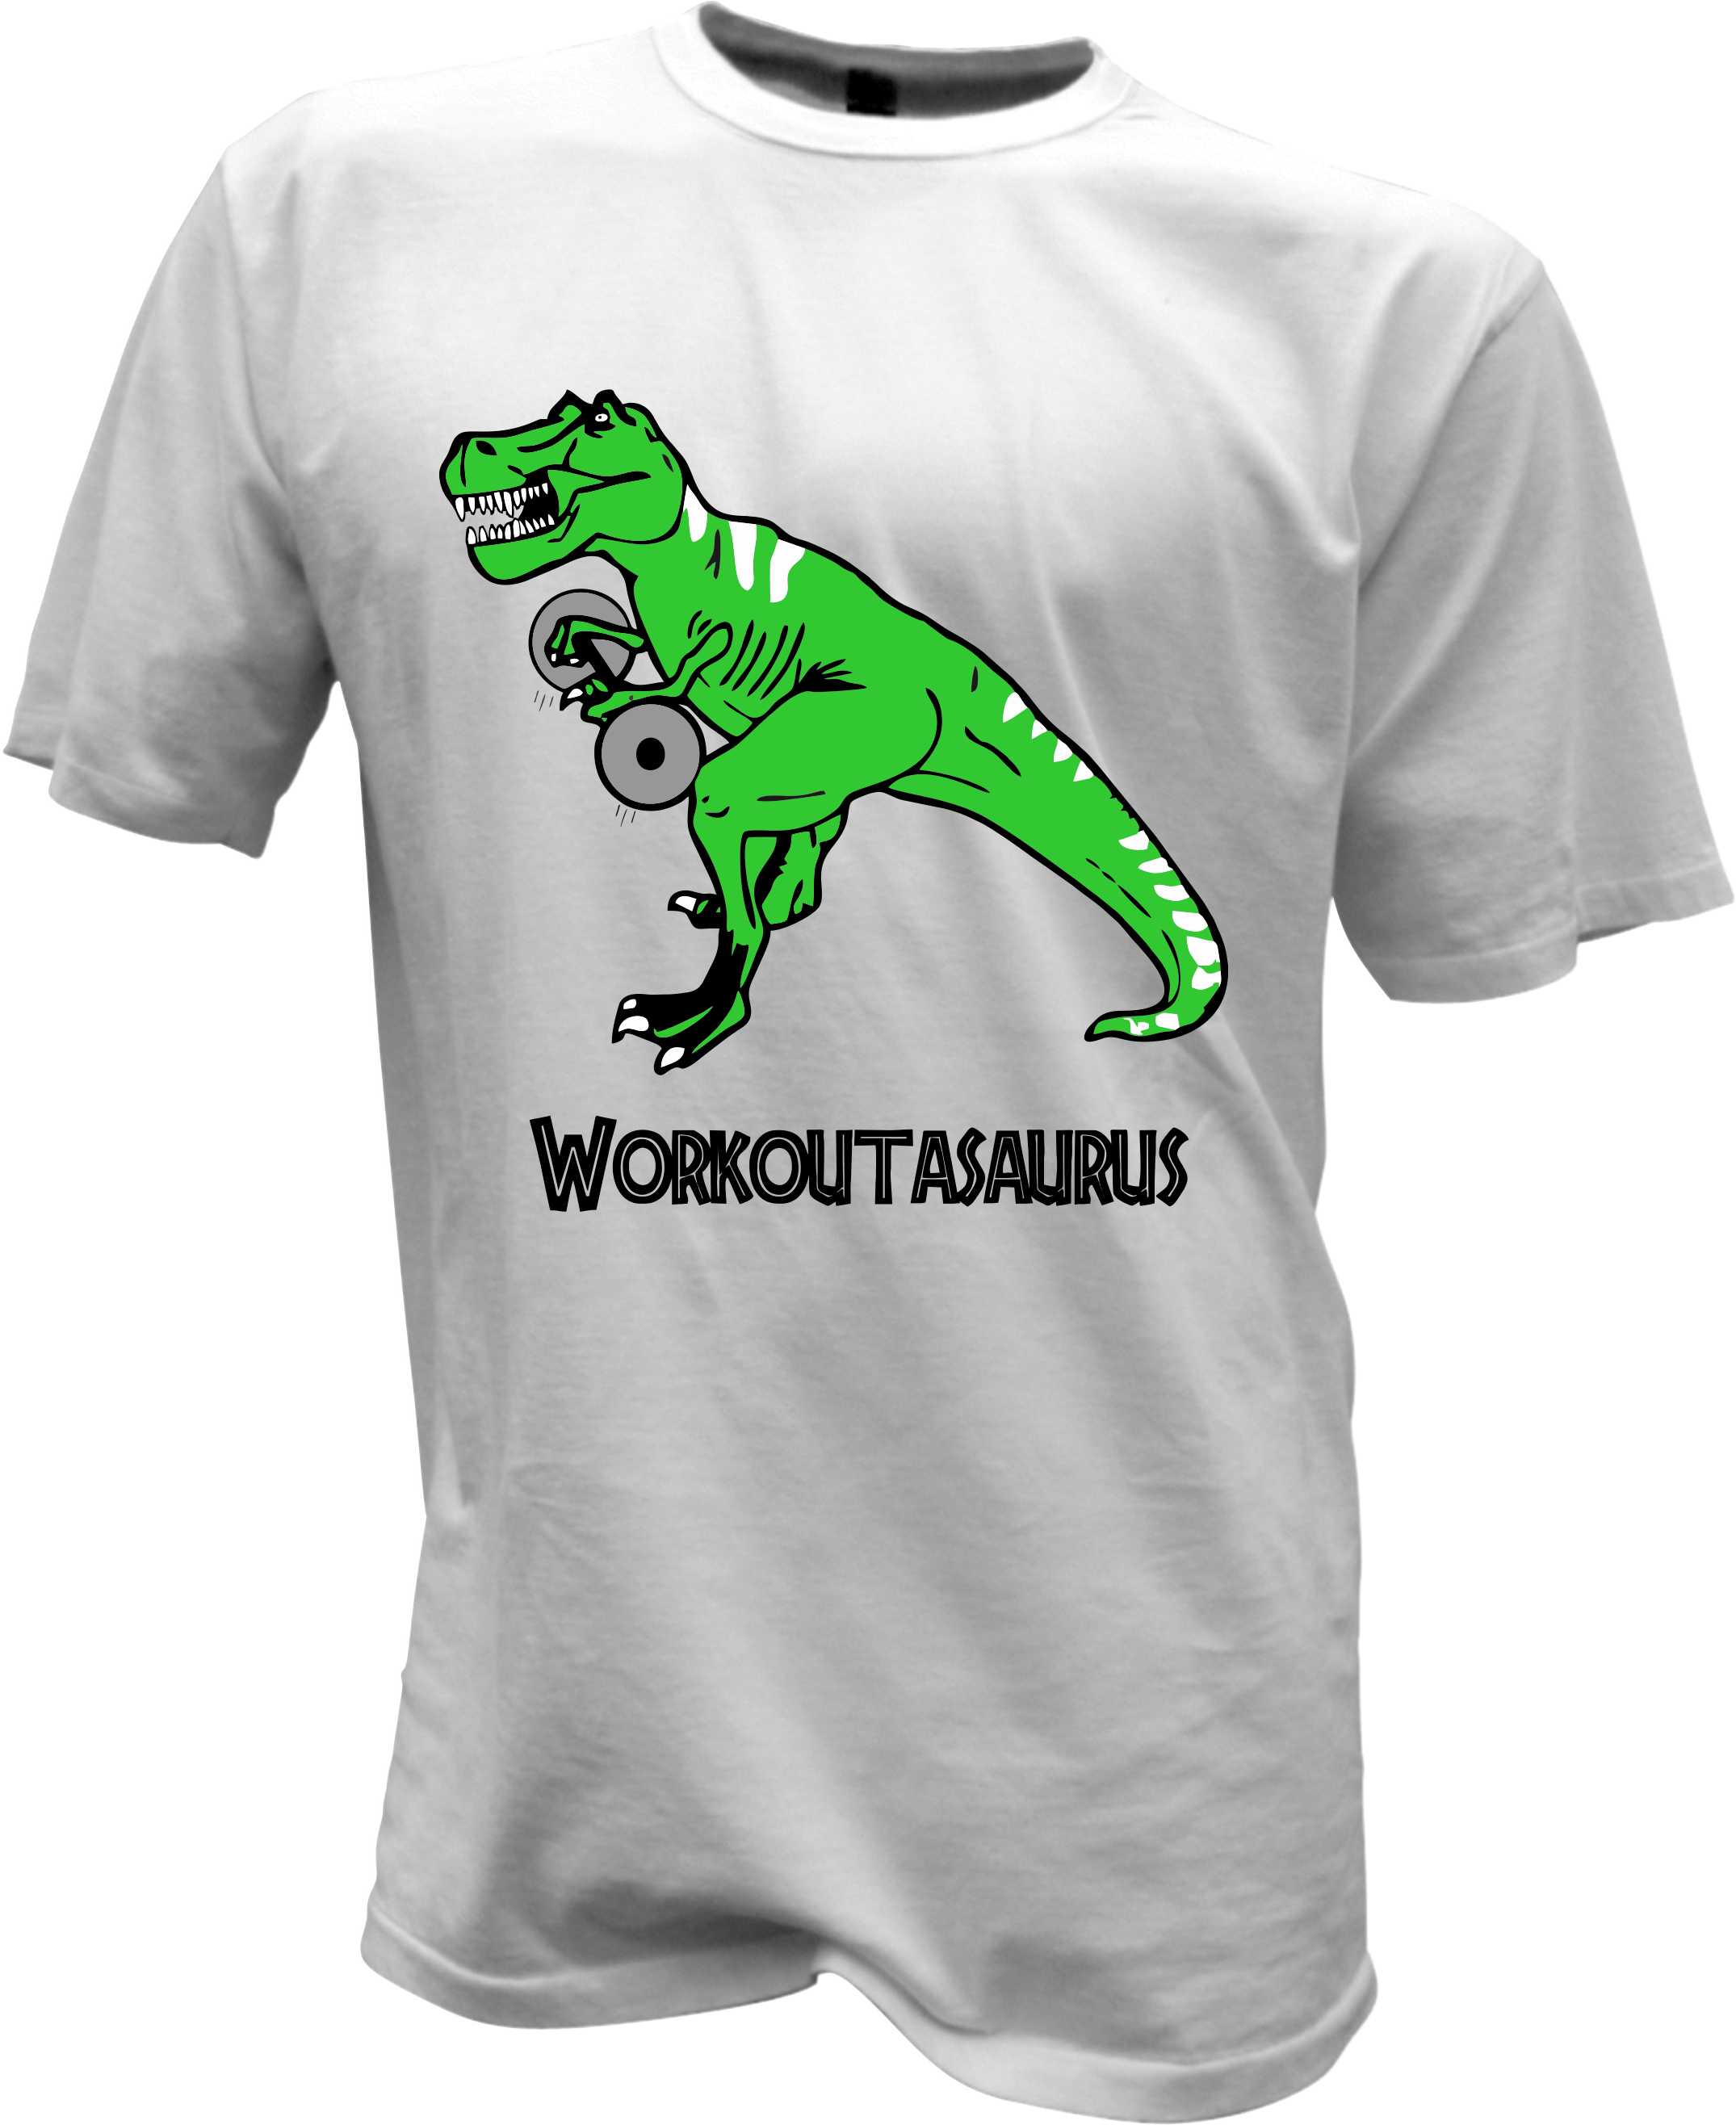 Dinosaurs workout t shirt for Design your own workout shirt